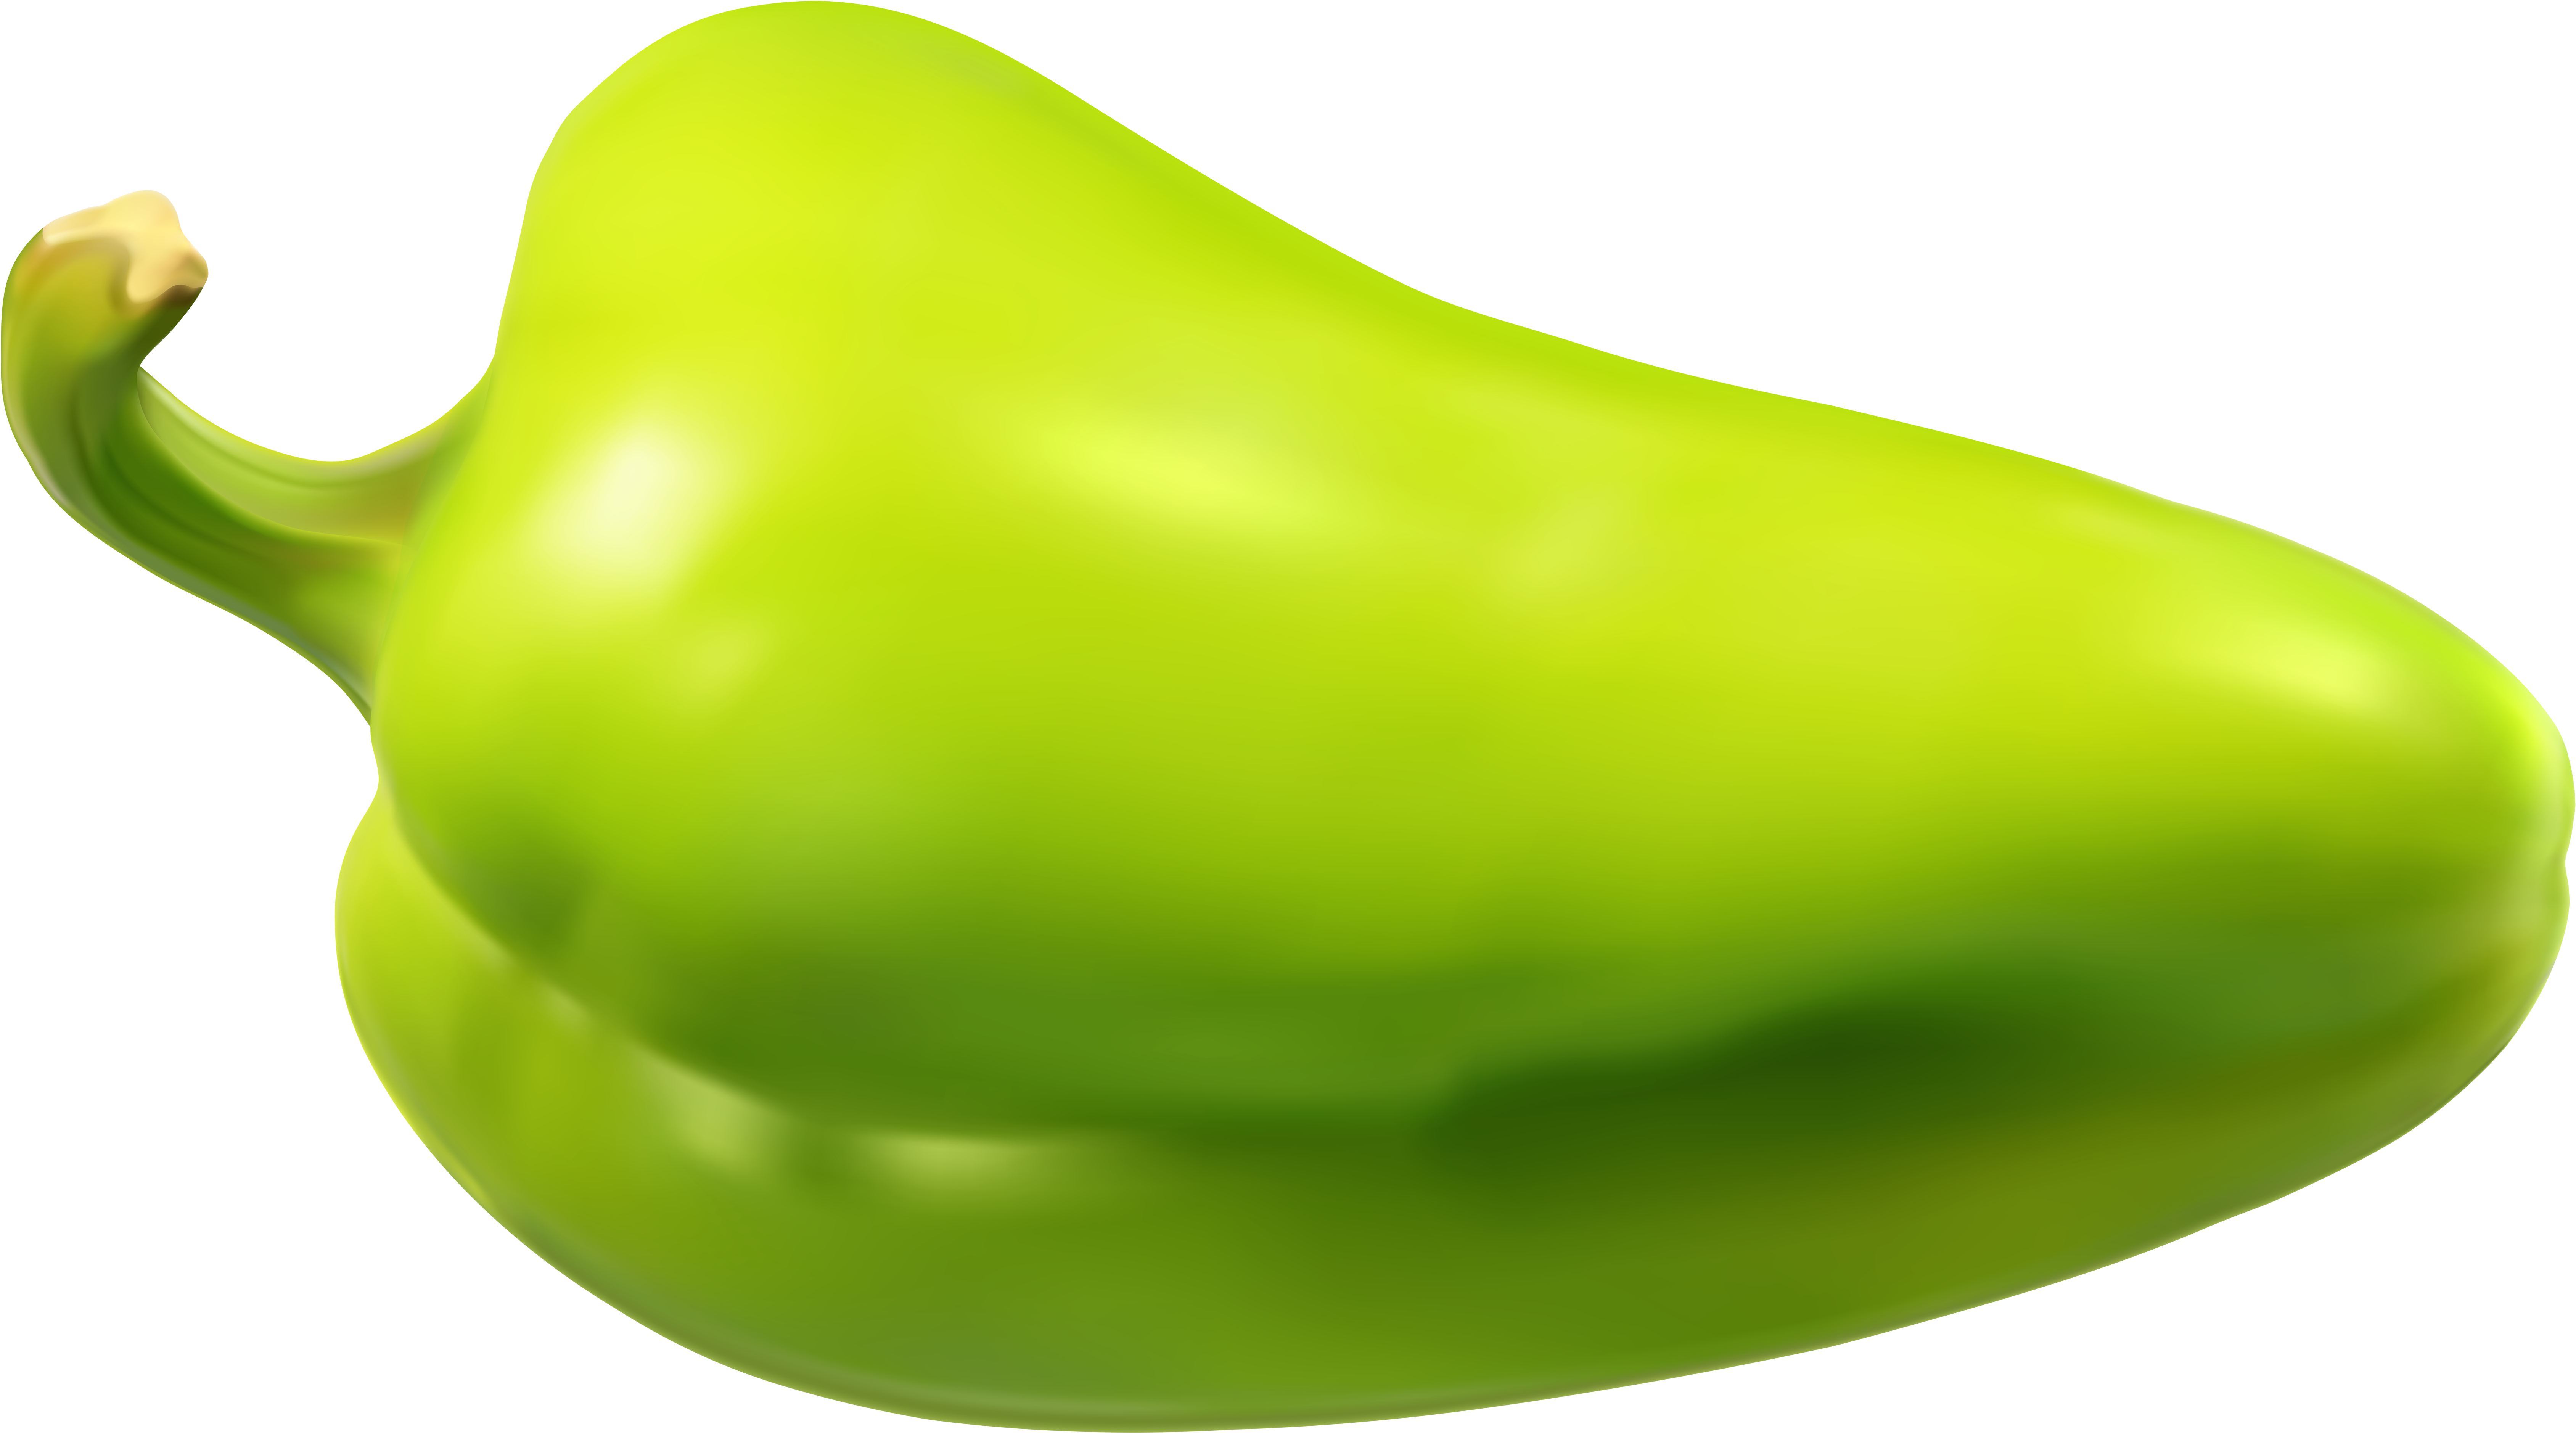 Peppers clipart green vegetable. Stuffed art images vegetables